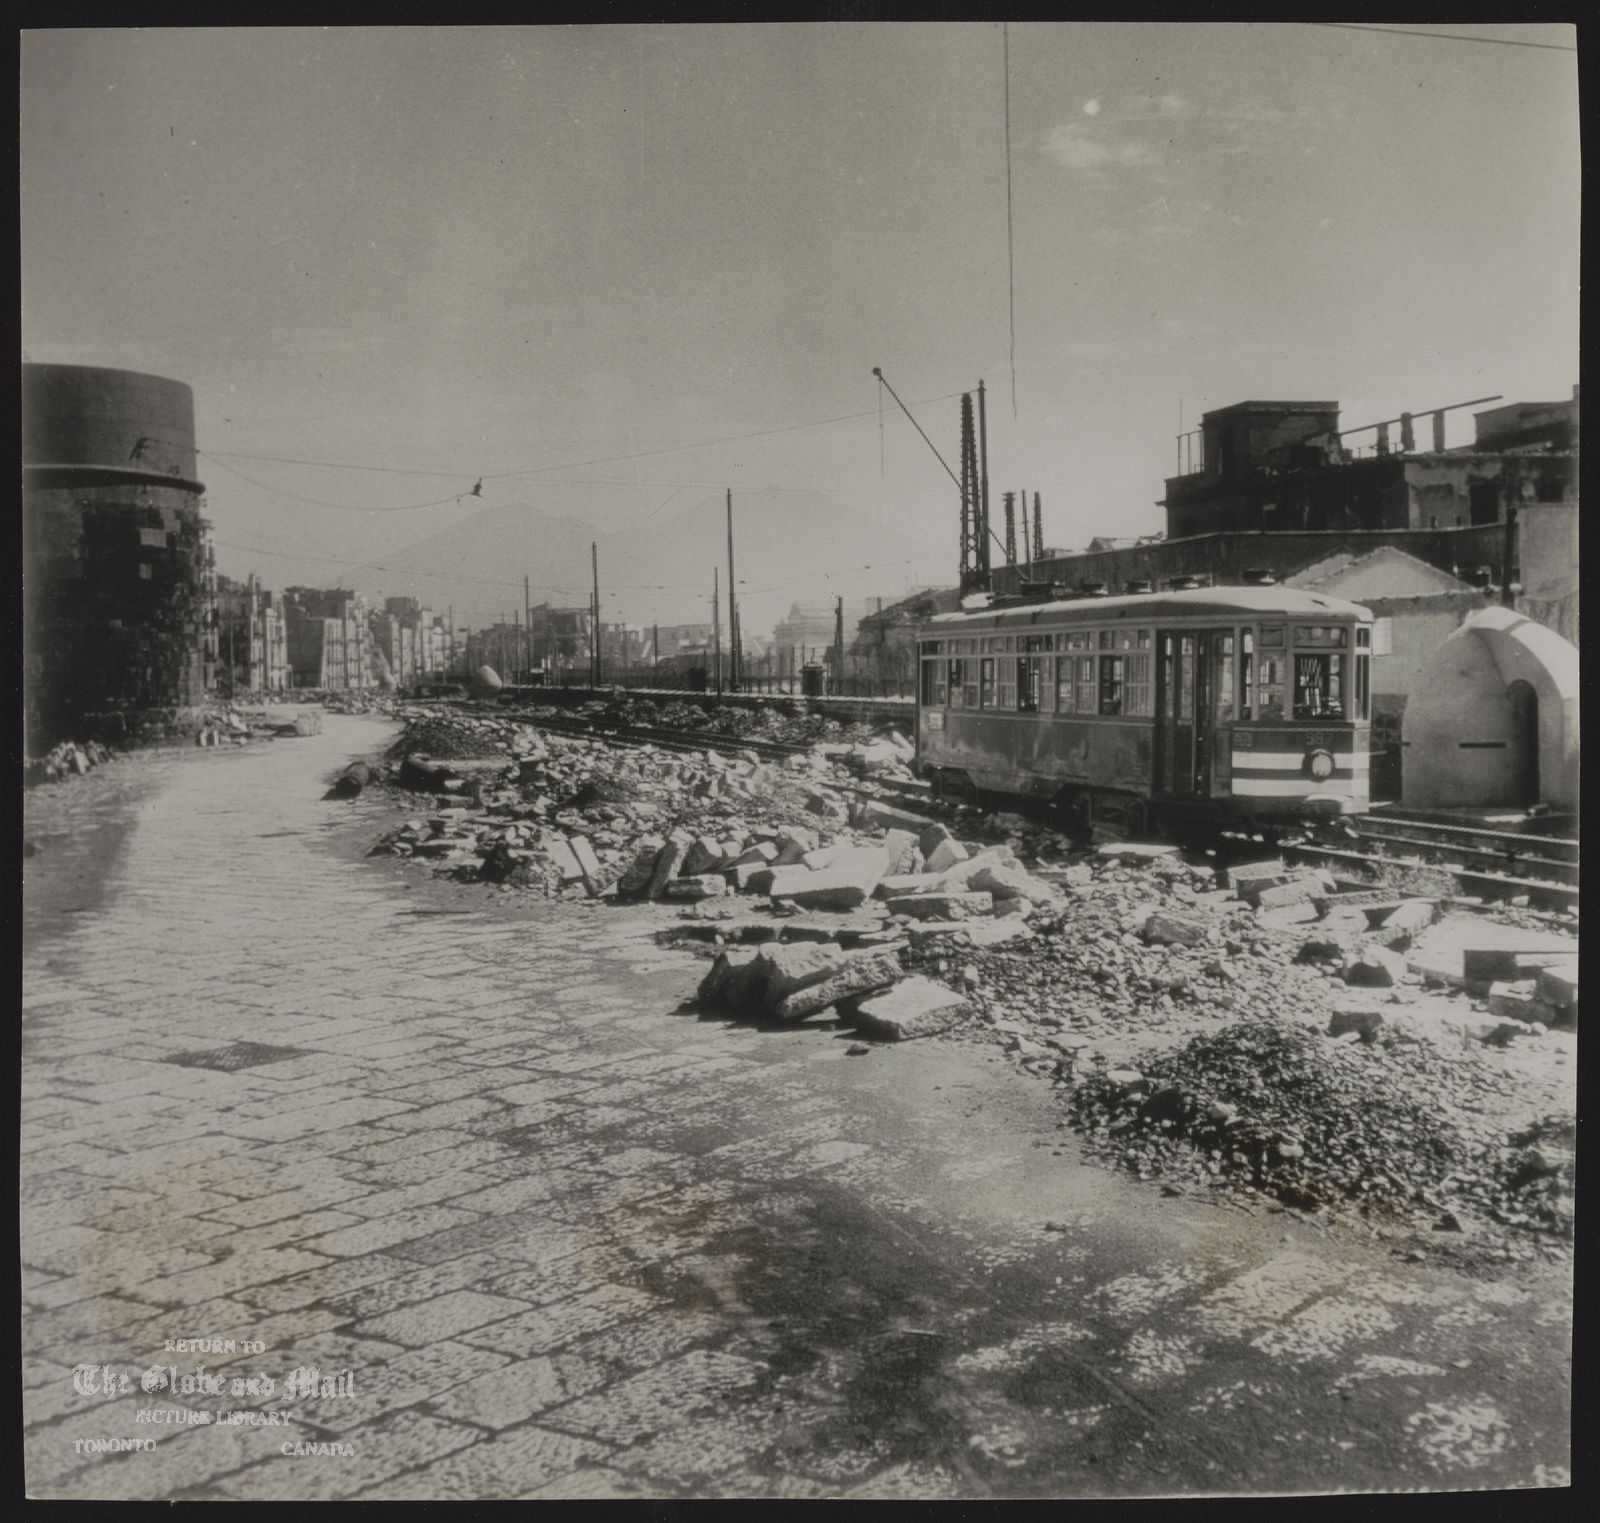 NAPLES city (Italy) (NY15-OCT.12)-NO POWER---DEBRIS LITTERED TRACKS AND NO POWER KEEP THIS STREET CAR STATIONARY IN RAVAGED NAPLES, ITALY, GERMANS MINED OR BOMBED EVERY IMPORTANT PUBLIC BUILDING BEFORE EVACUATING THE CITY. (AP WirePhoto) AJB3095L-PL) 43